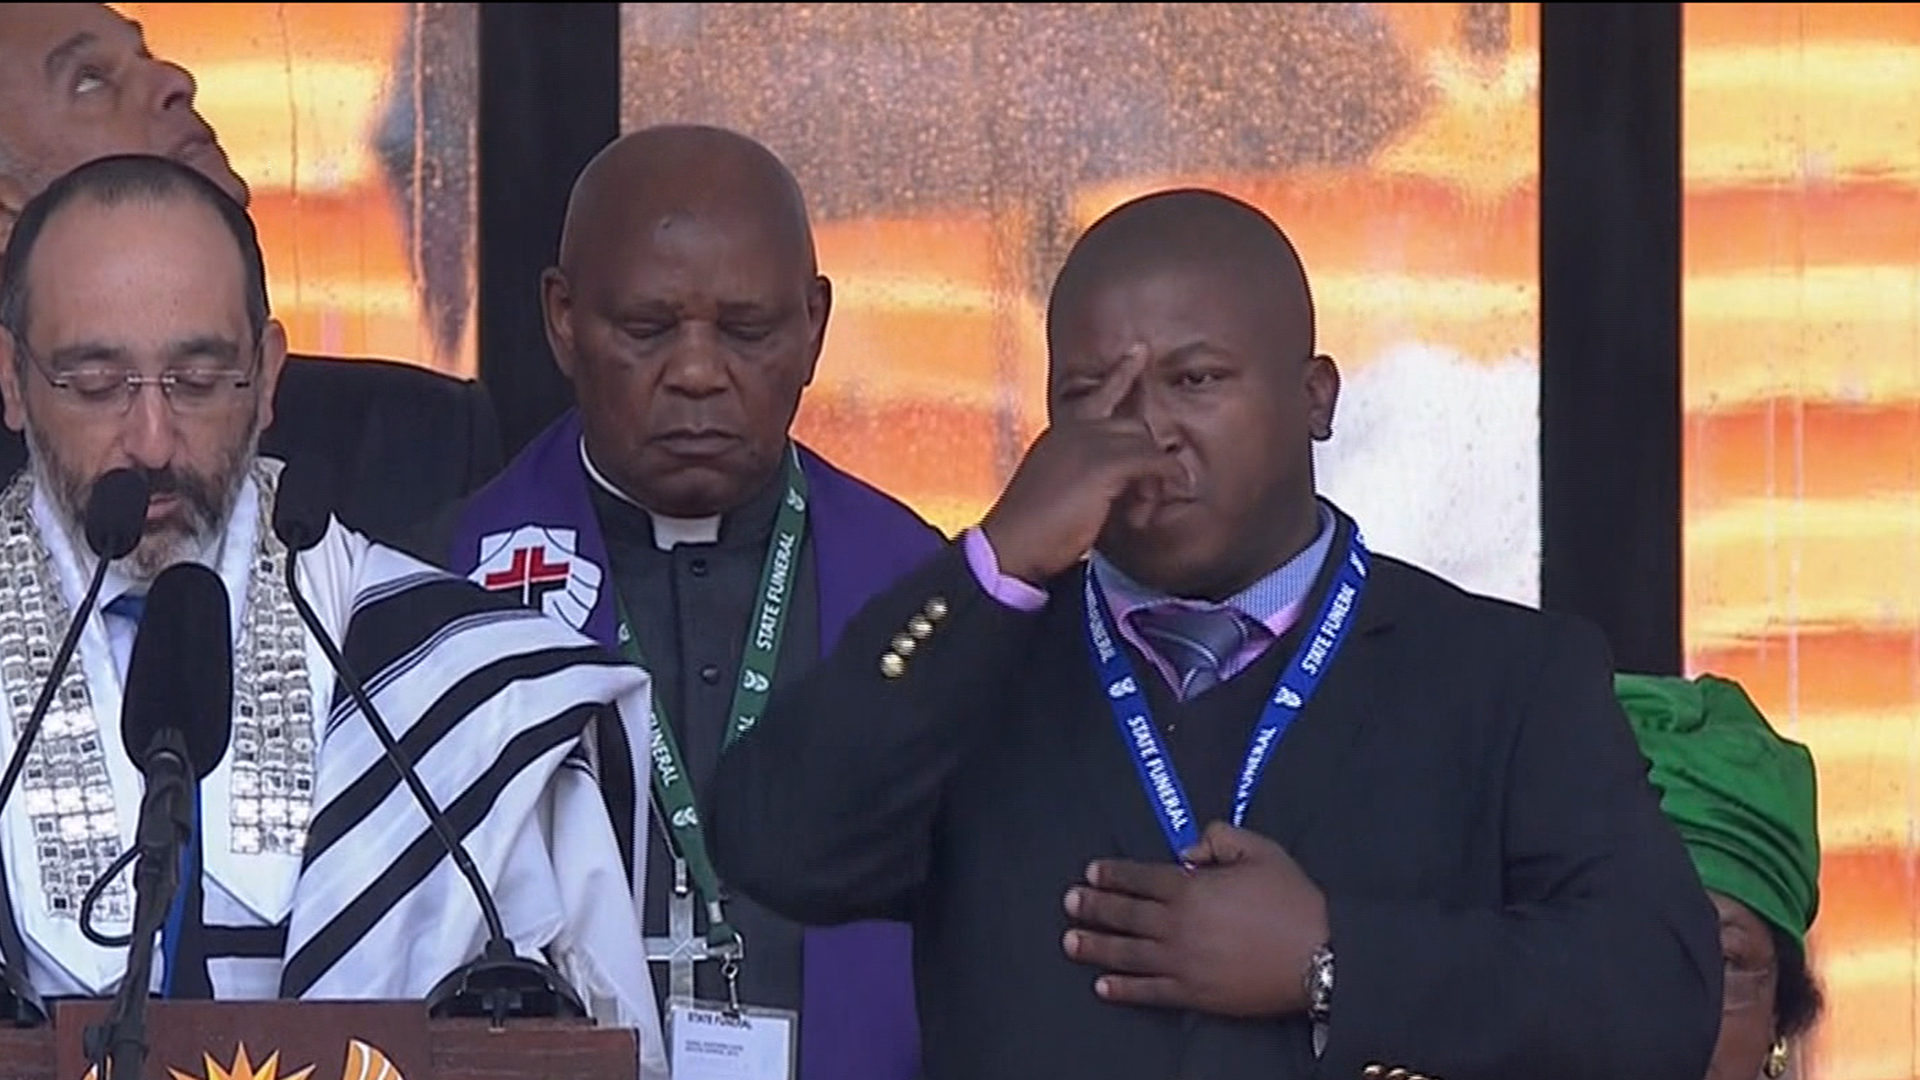 Mandela memorial interpreter 'a fake'